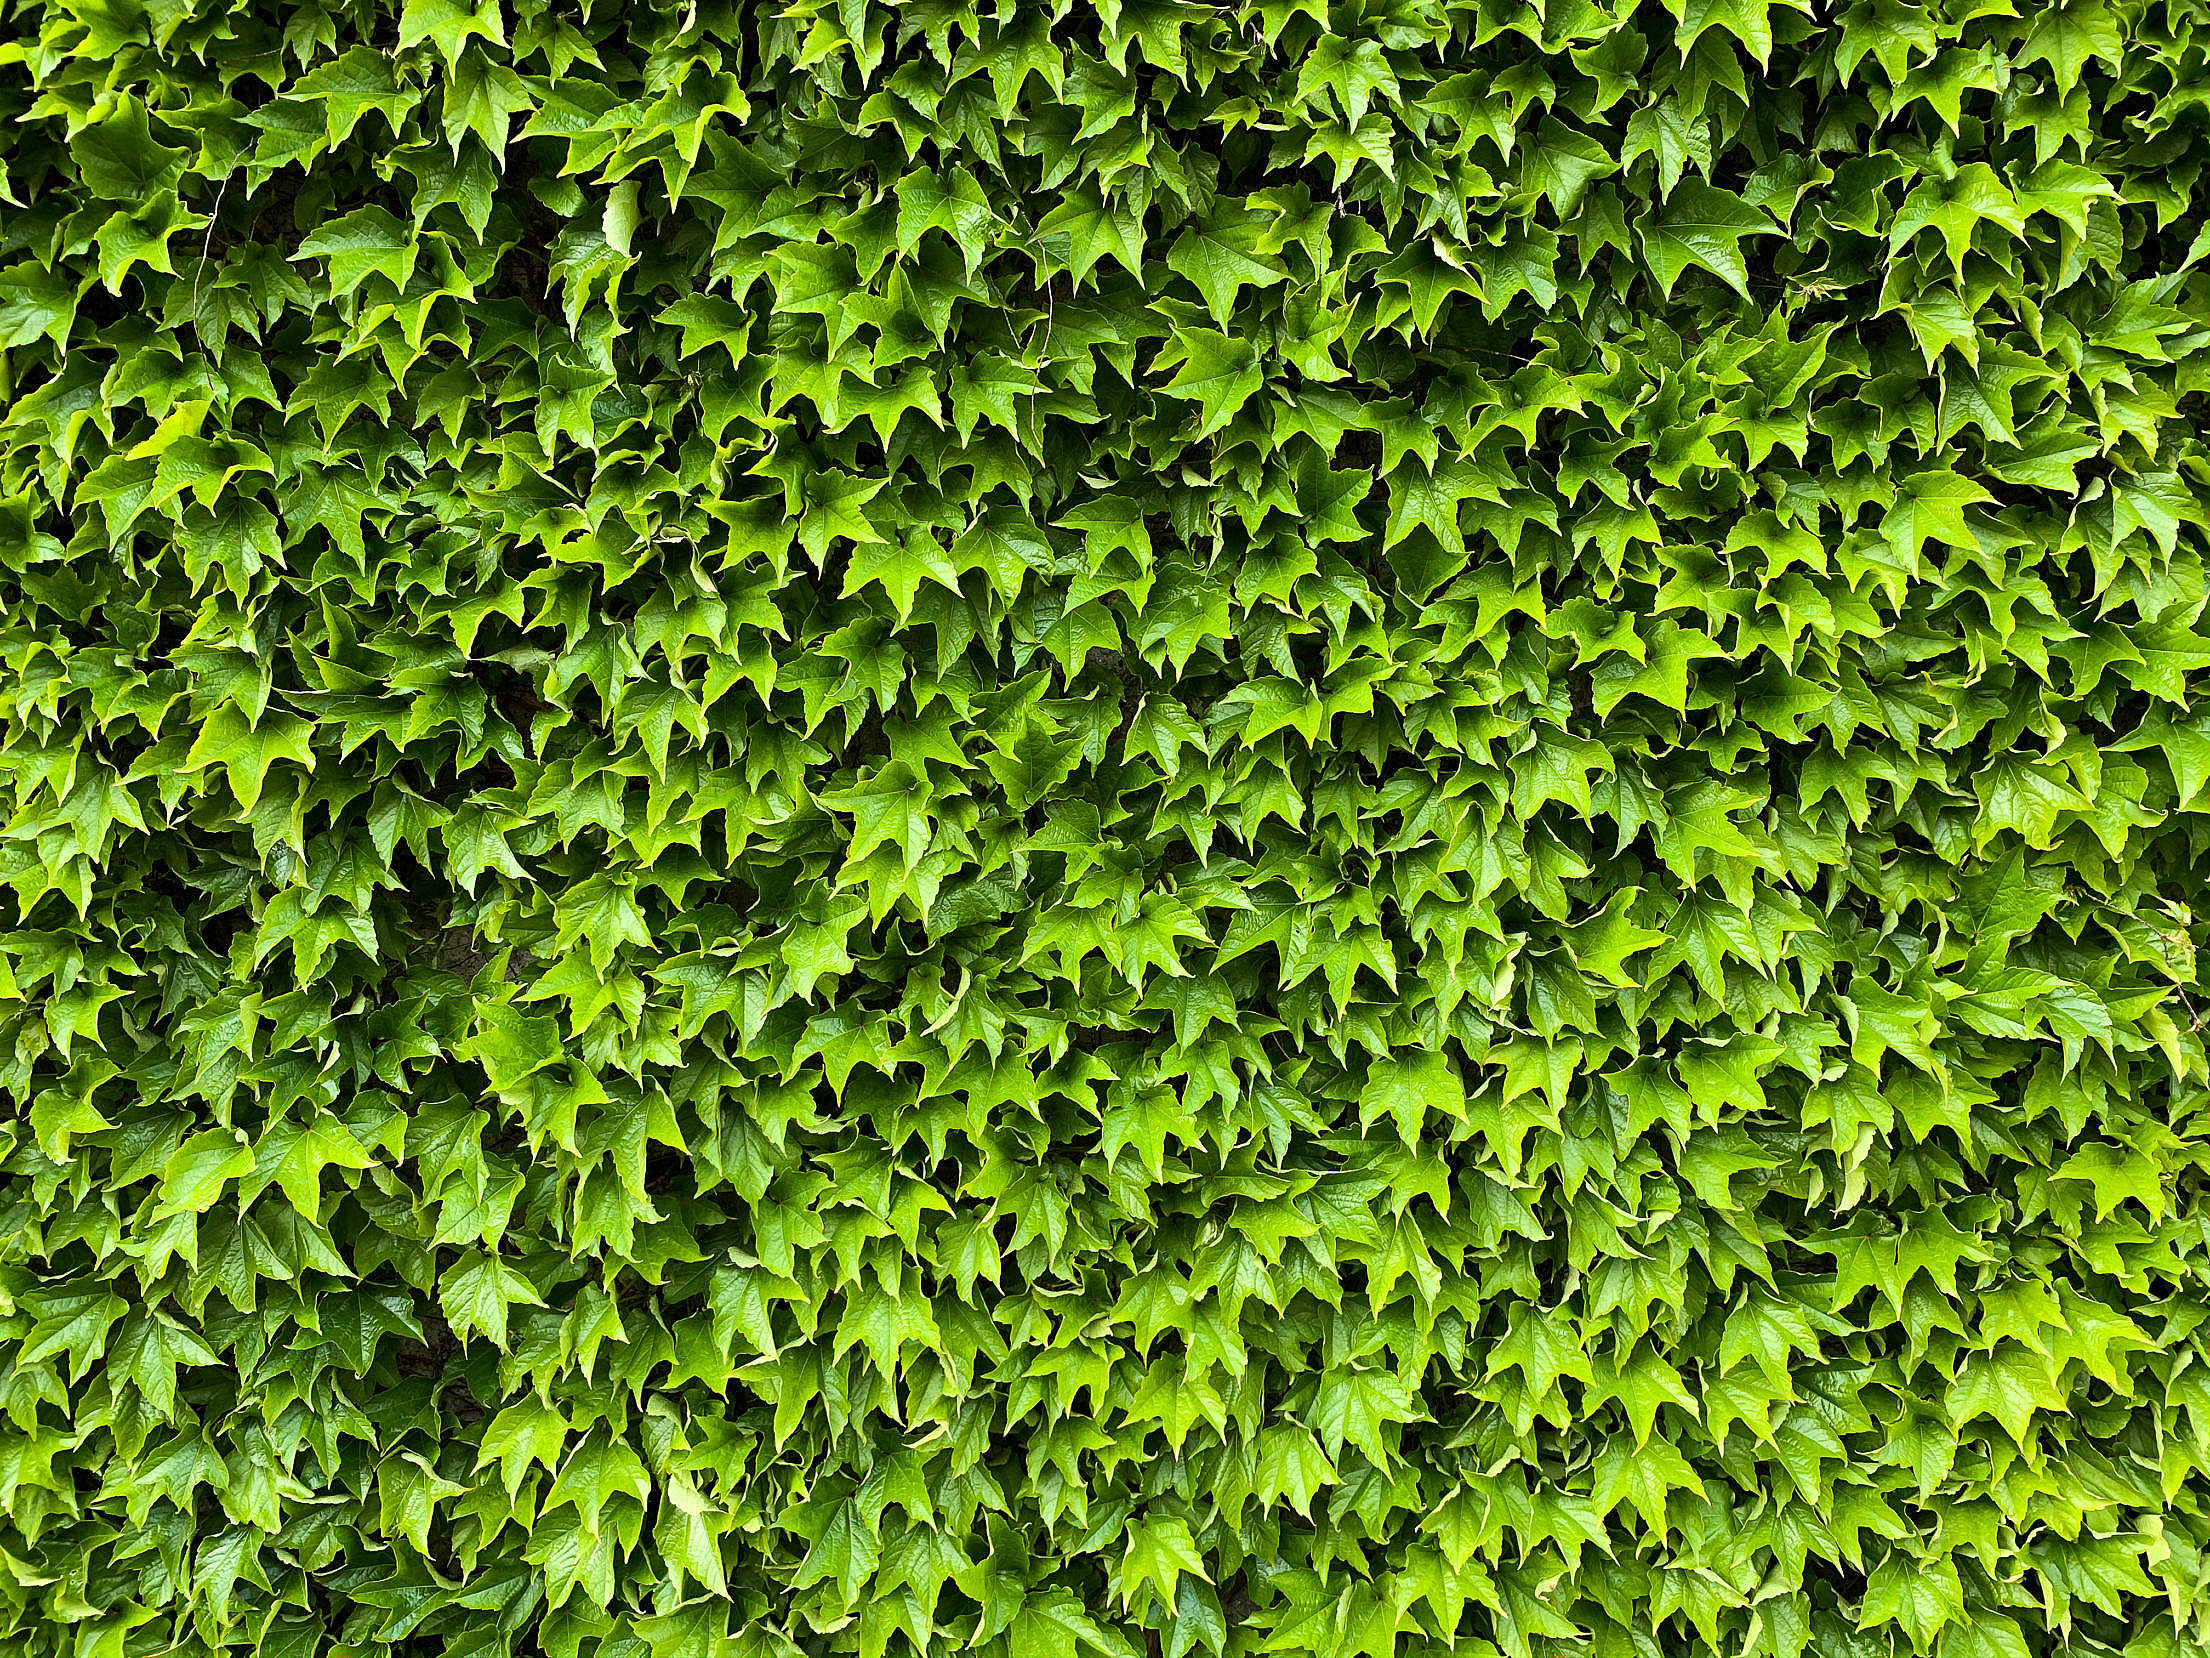 Green Ivy Wall Texture Free Stock Photo